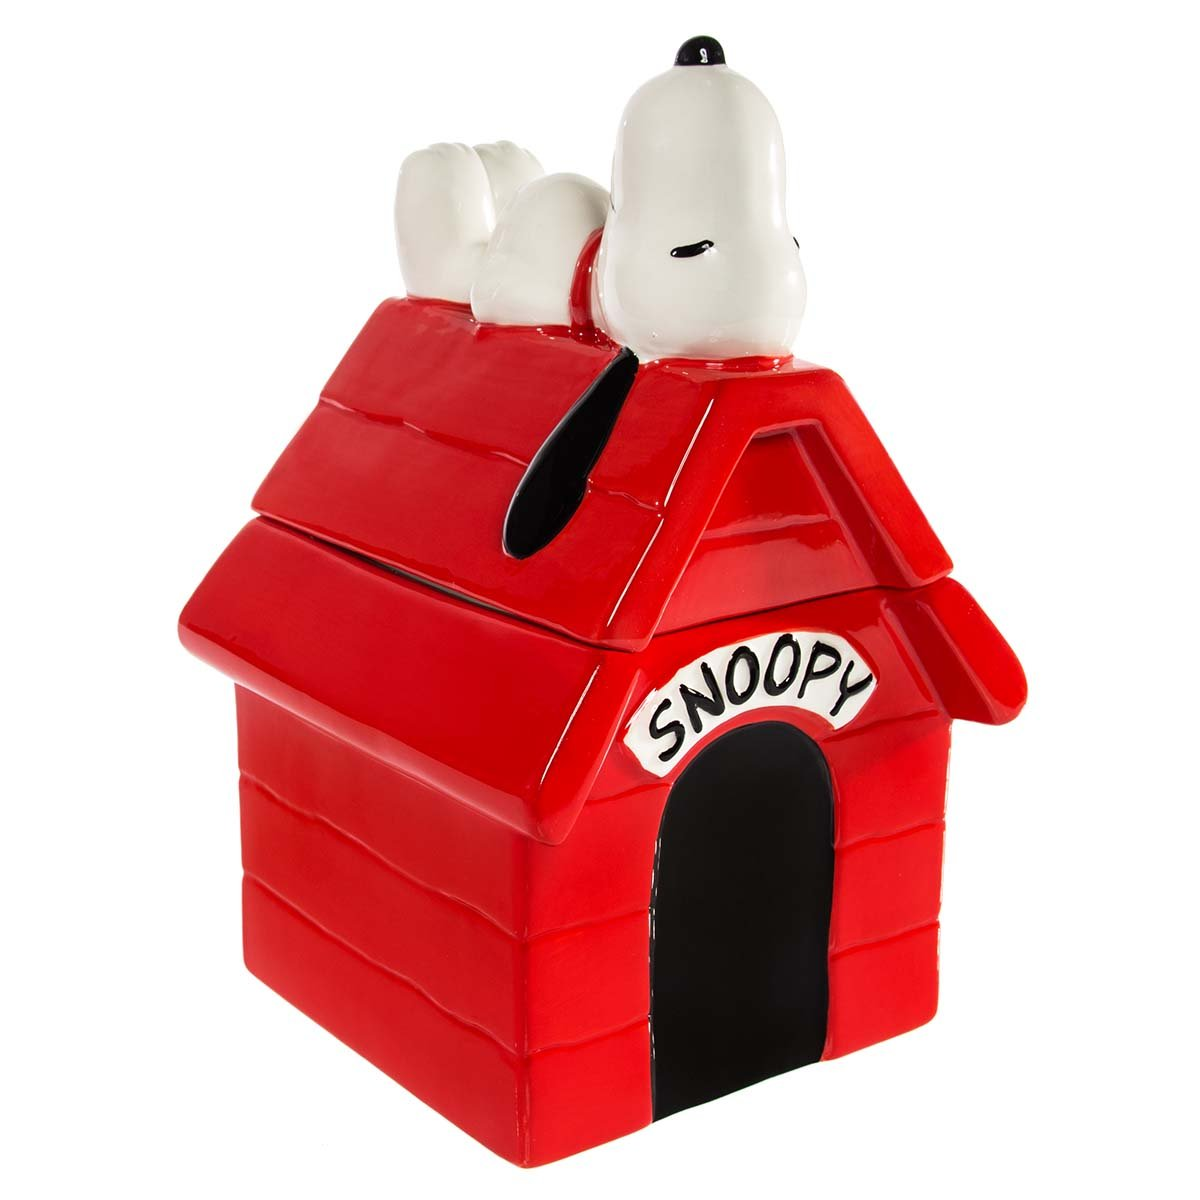 "Gibson Peanuts Snoopy Dog House 10.5"" Ceramic Cookie With Lid Large Treat Jar Food Storage Container"